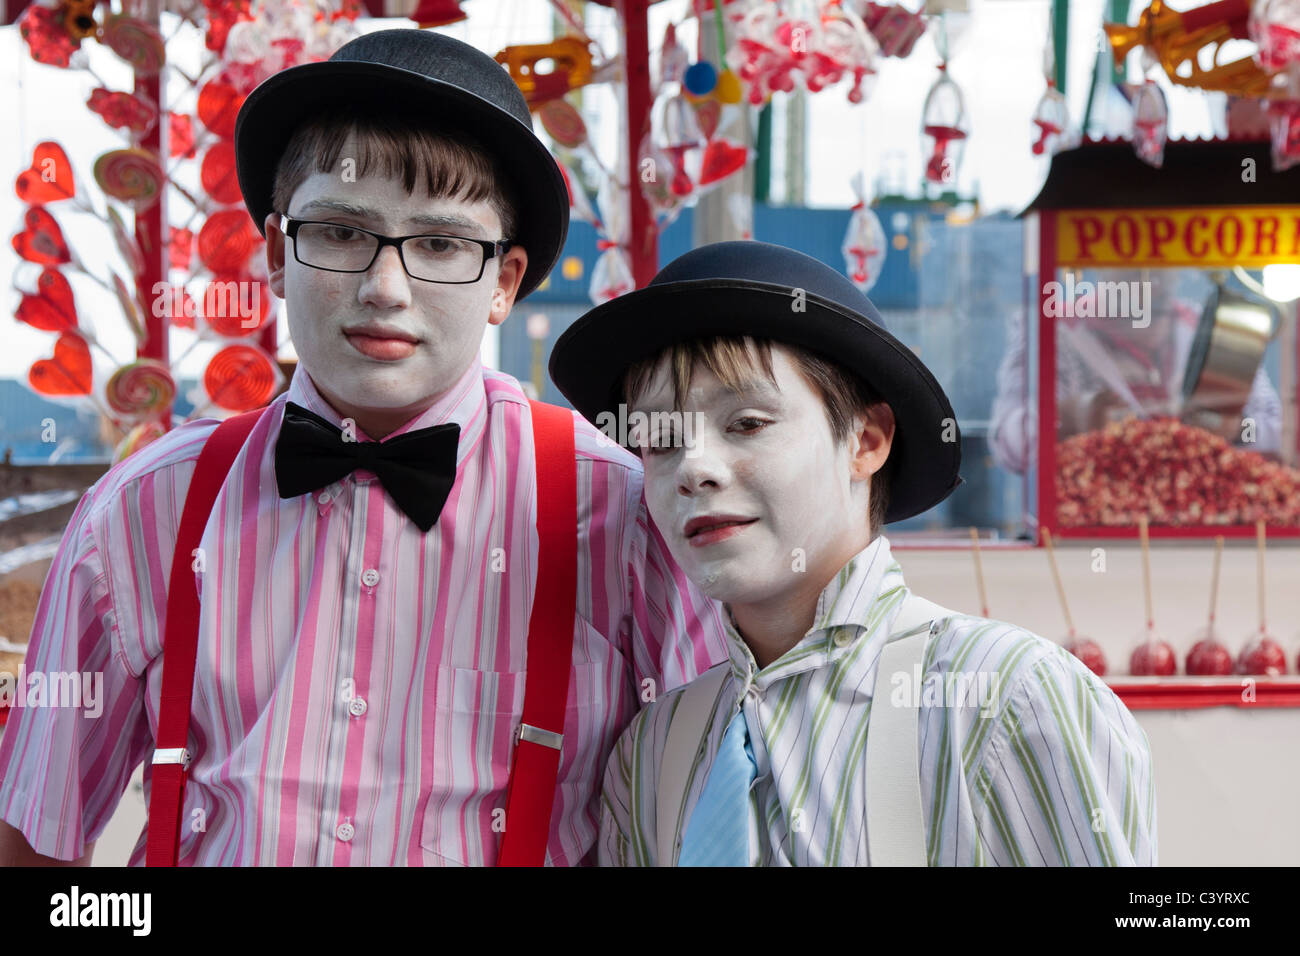 two-young-boys-dressed-as-laurel-and-har